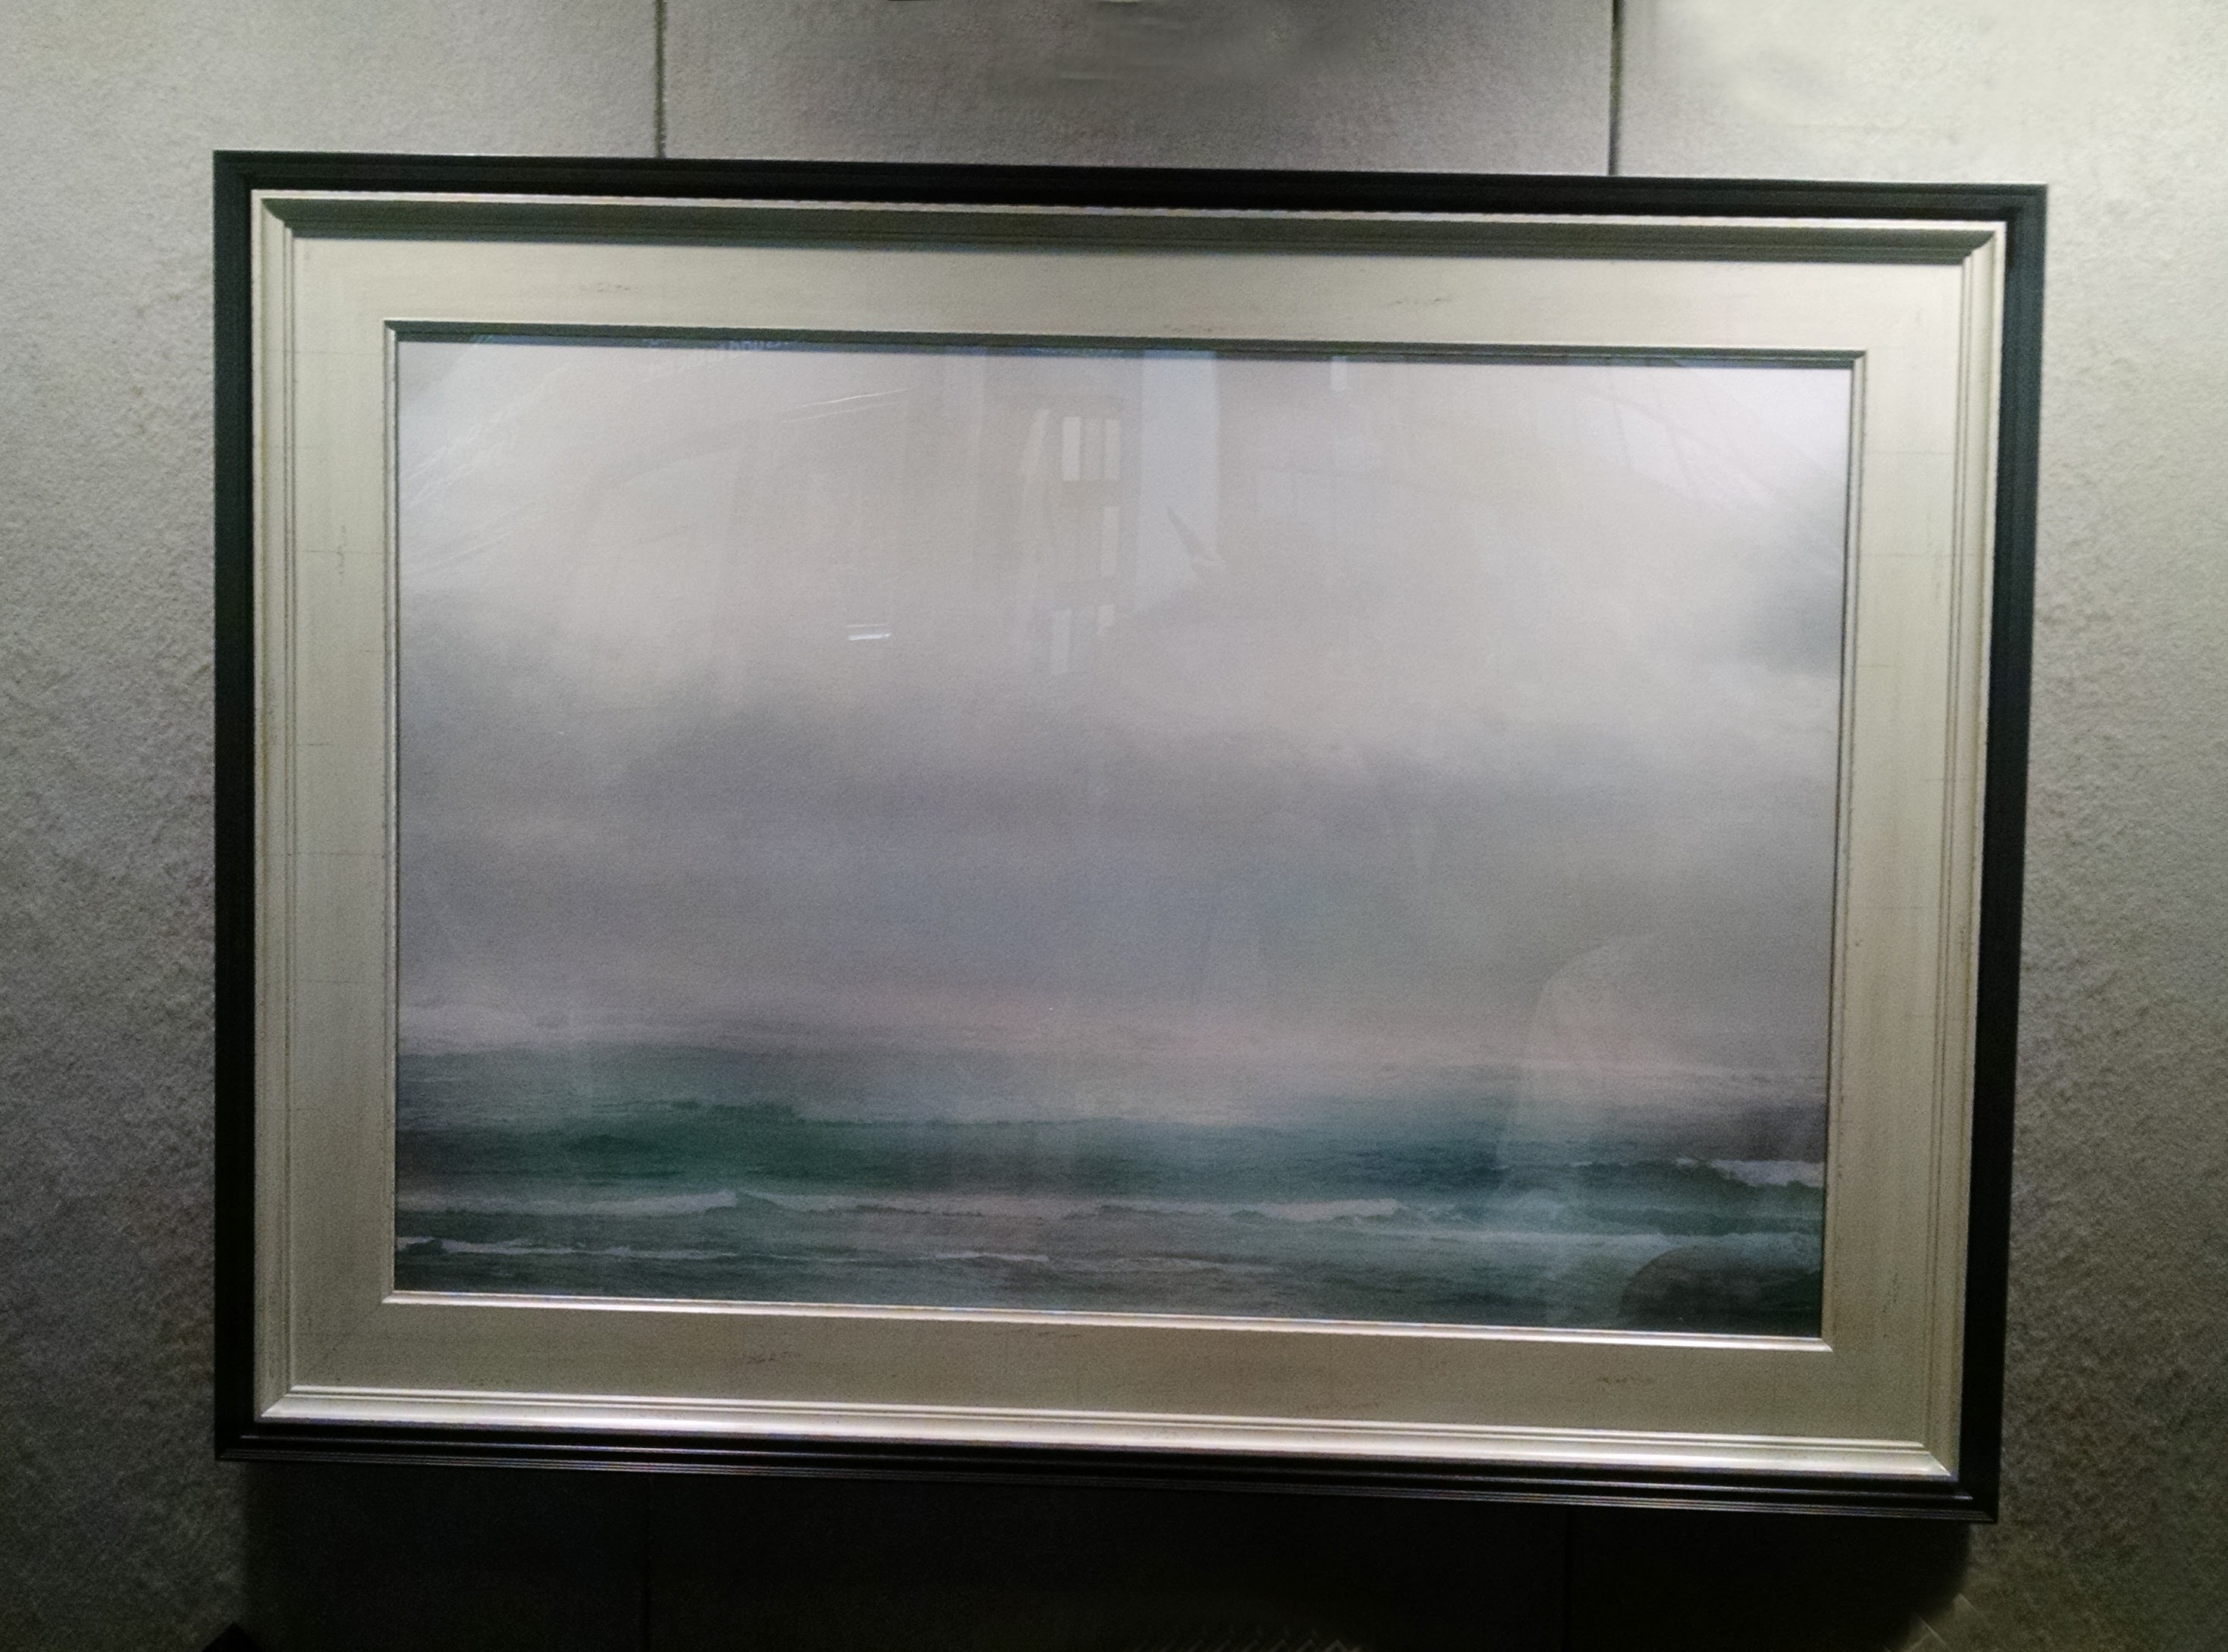 Fine Art Framing - Allan Jeffries Framing